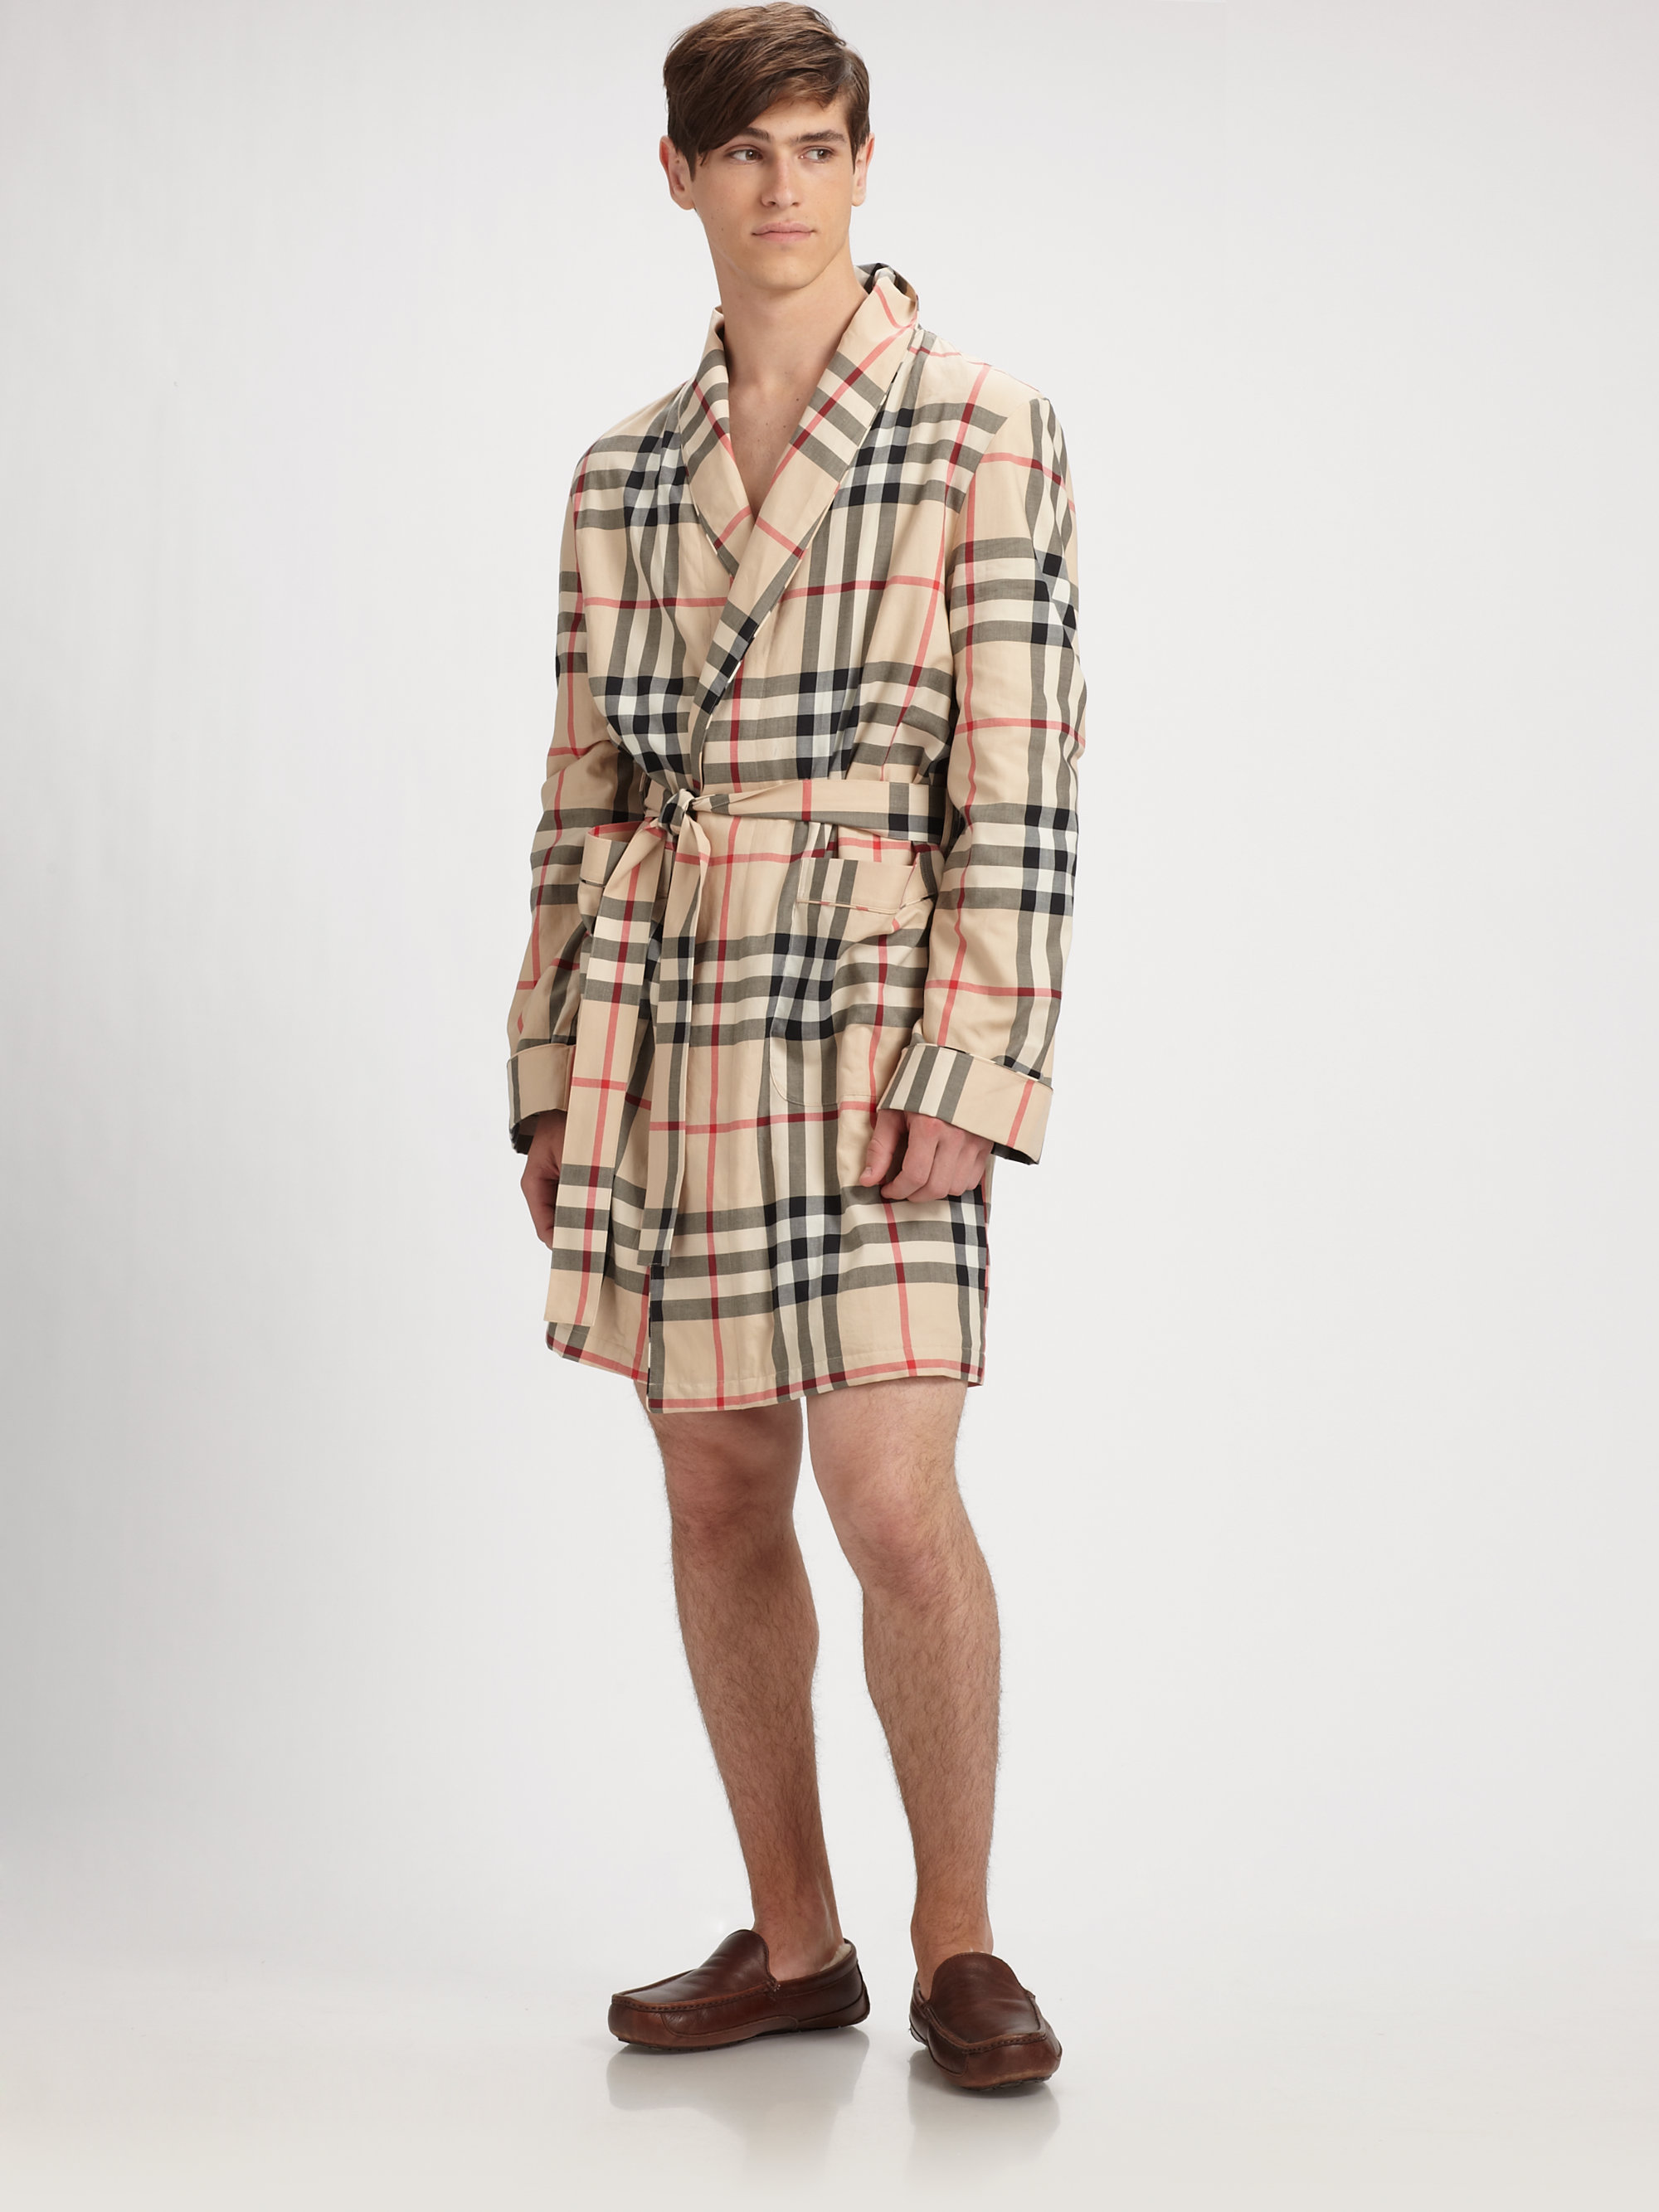 Lyst - Burberry Check Robe in Natural for Men